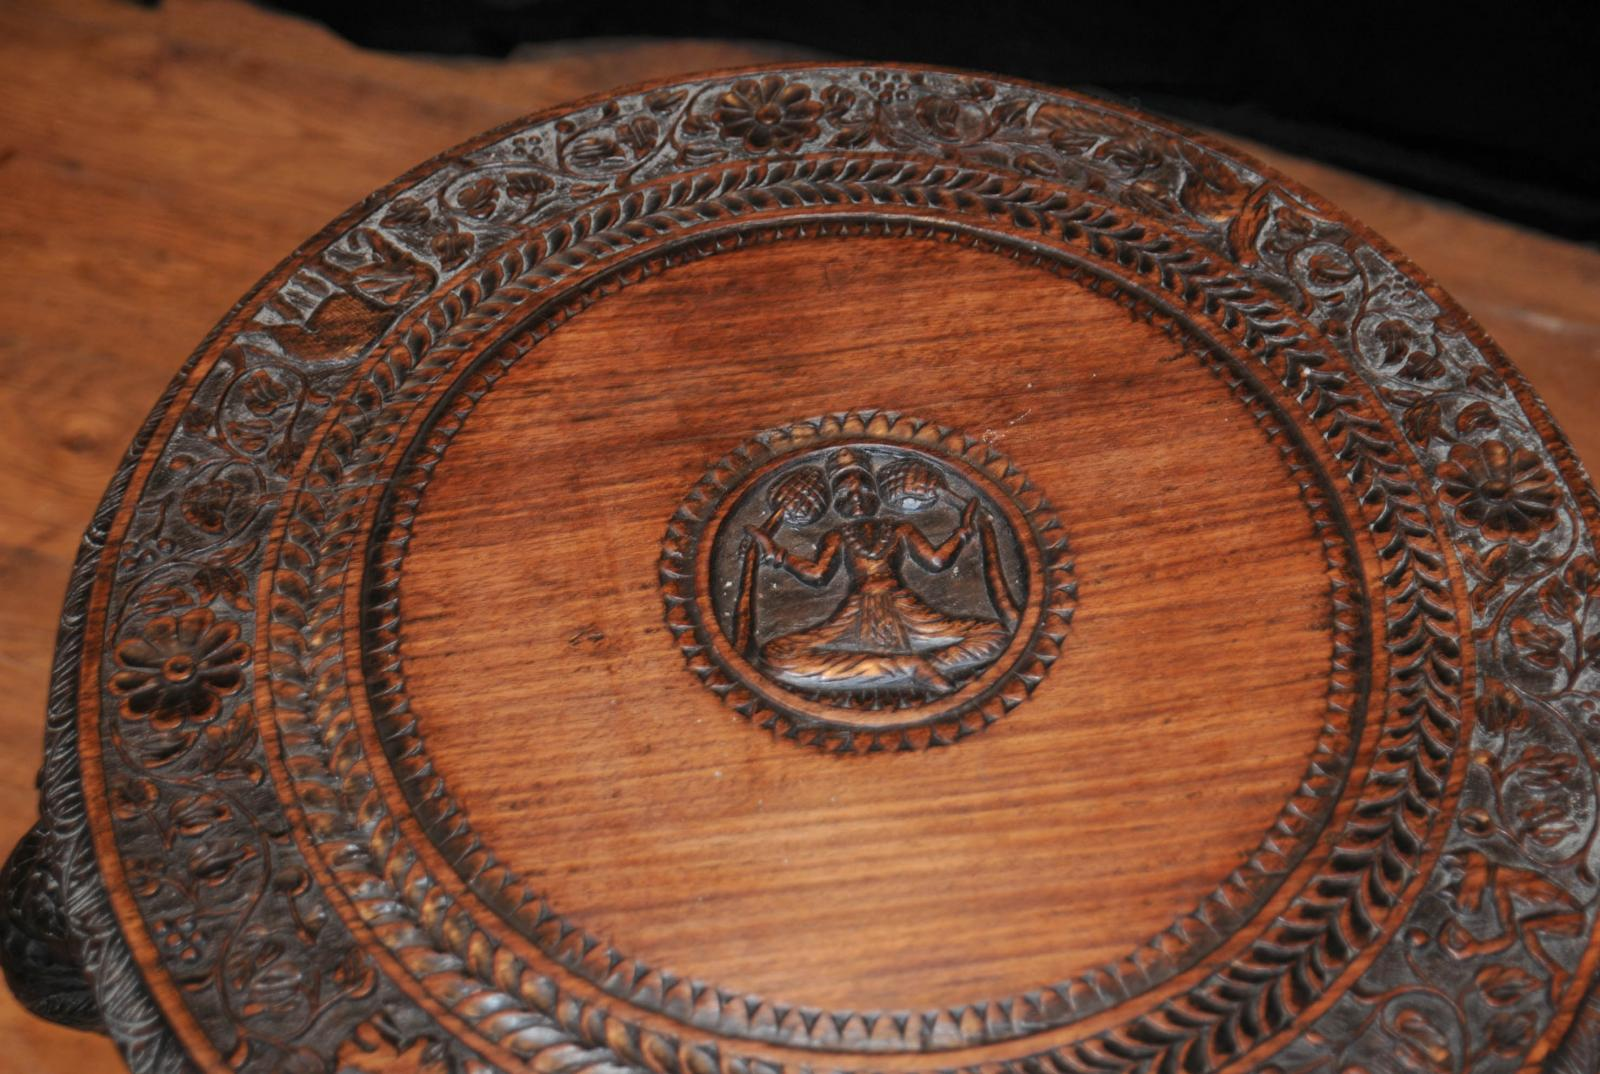 About Antique Burmese Hand Carved Elephant Side Table Coffee Tables